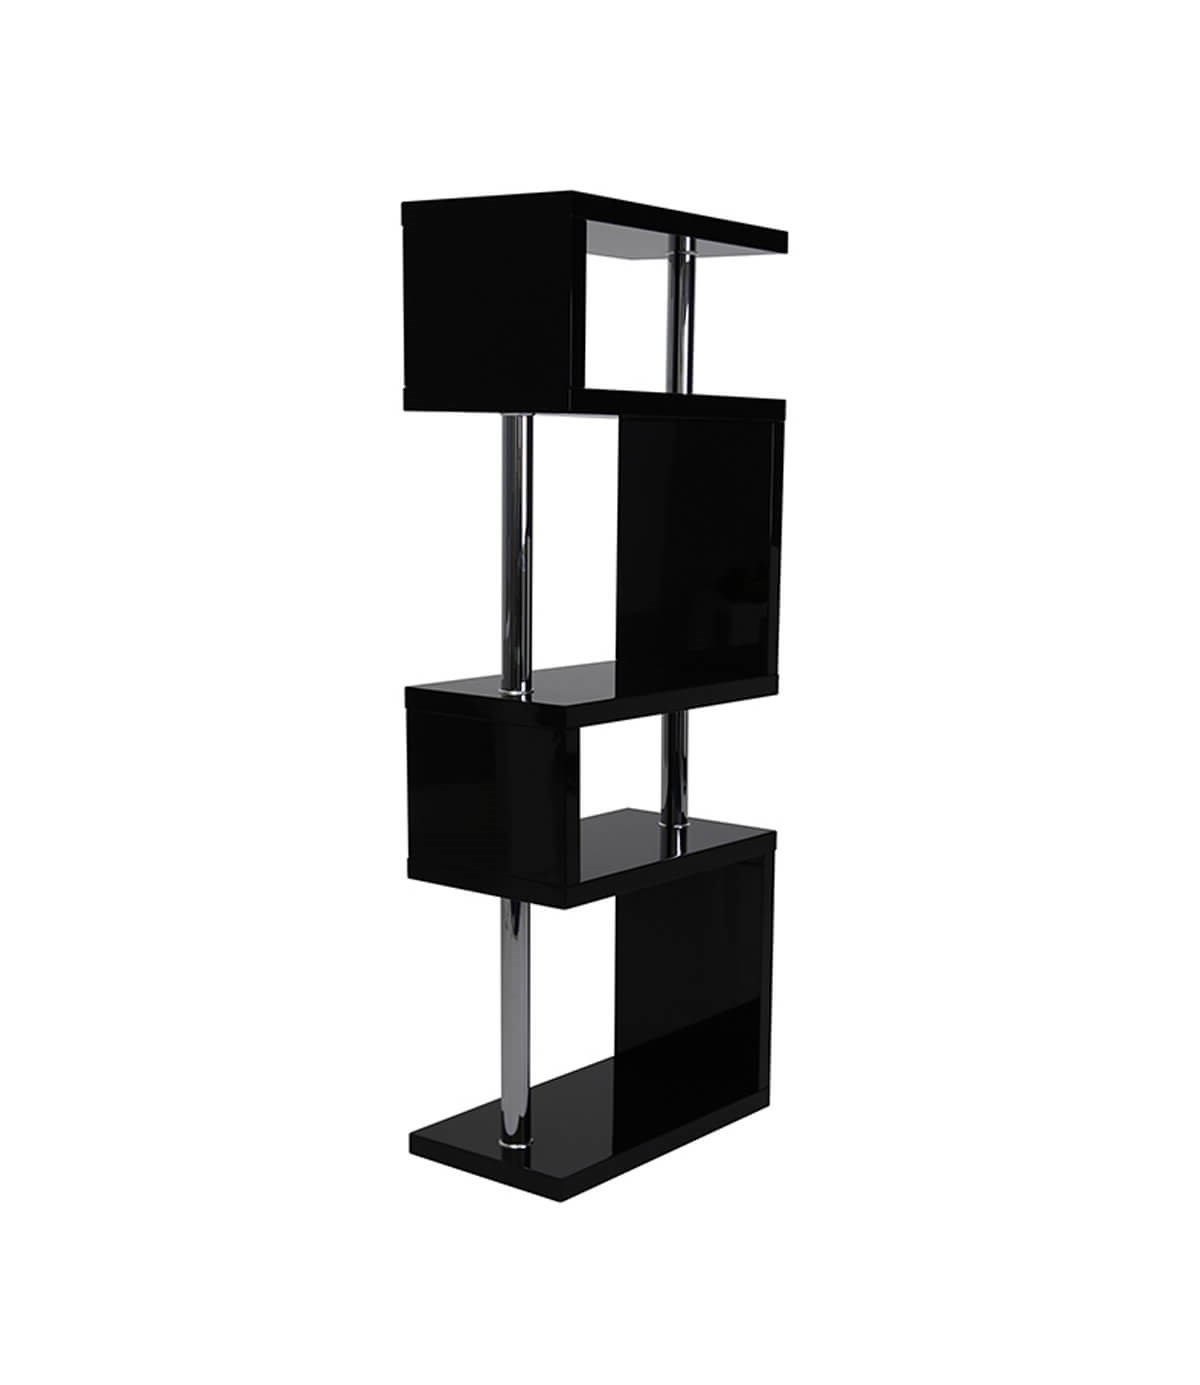 Miami Black High Gloss 5 Tier Shelving Unit Manchester